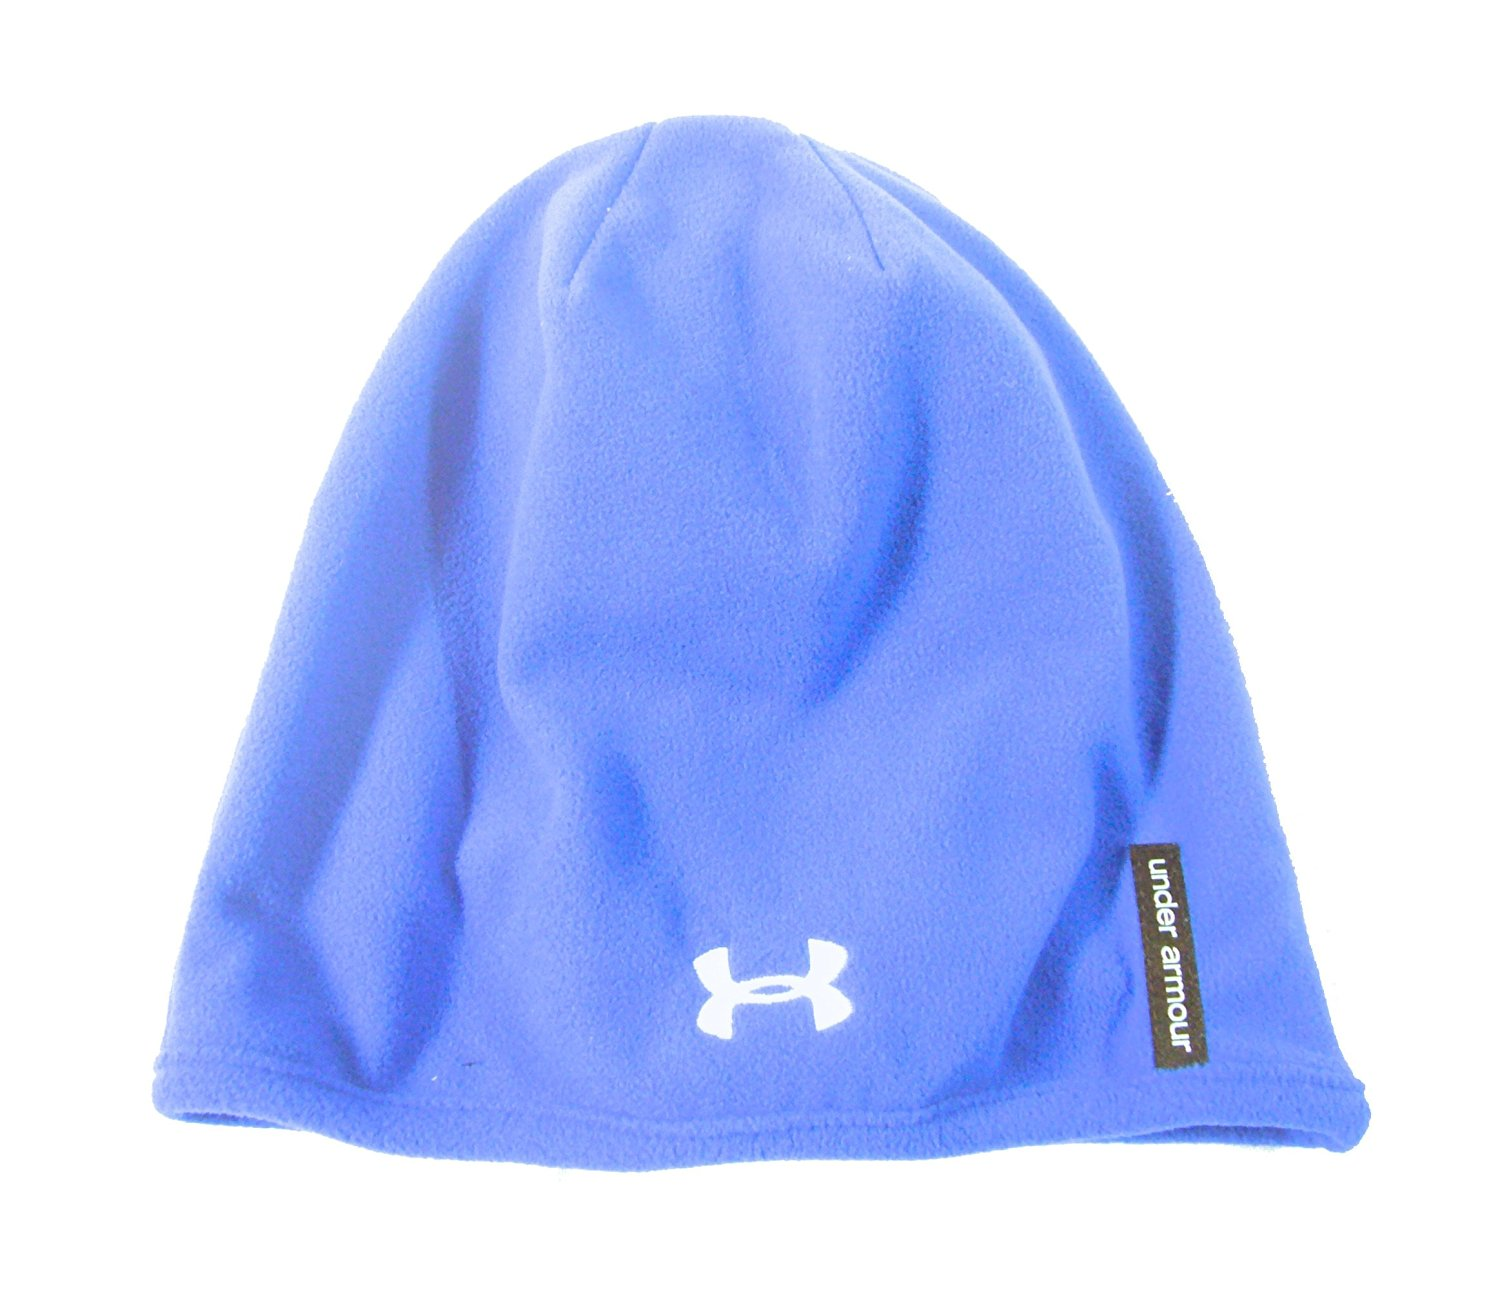 0c50139f4c3 Buy NEW Under Armour Micro Fleece Blustery Royal Blue White Beanie ...